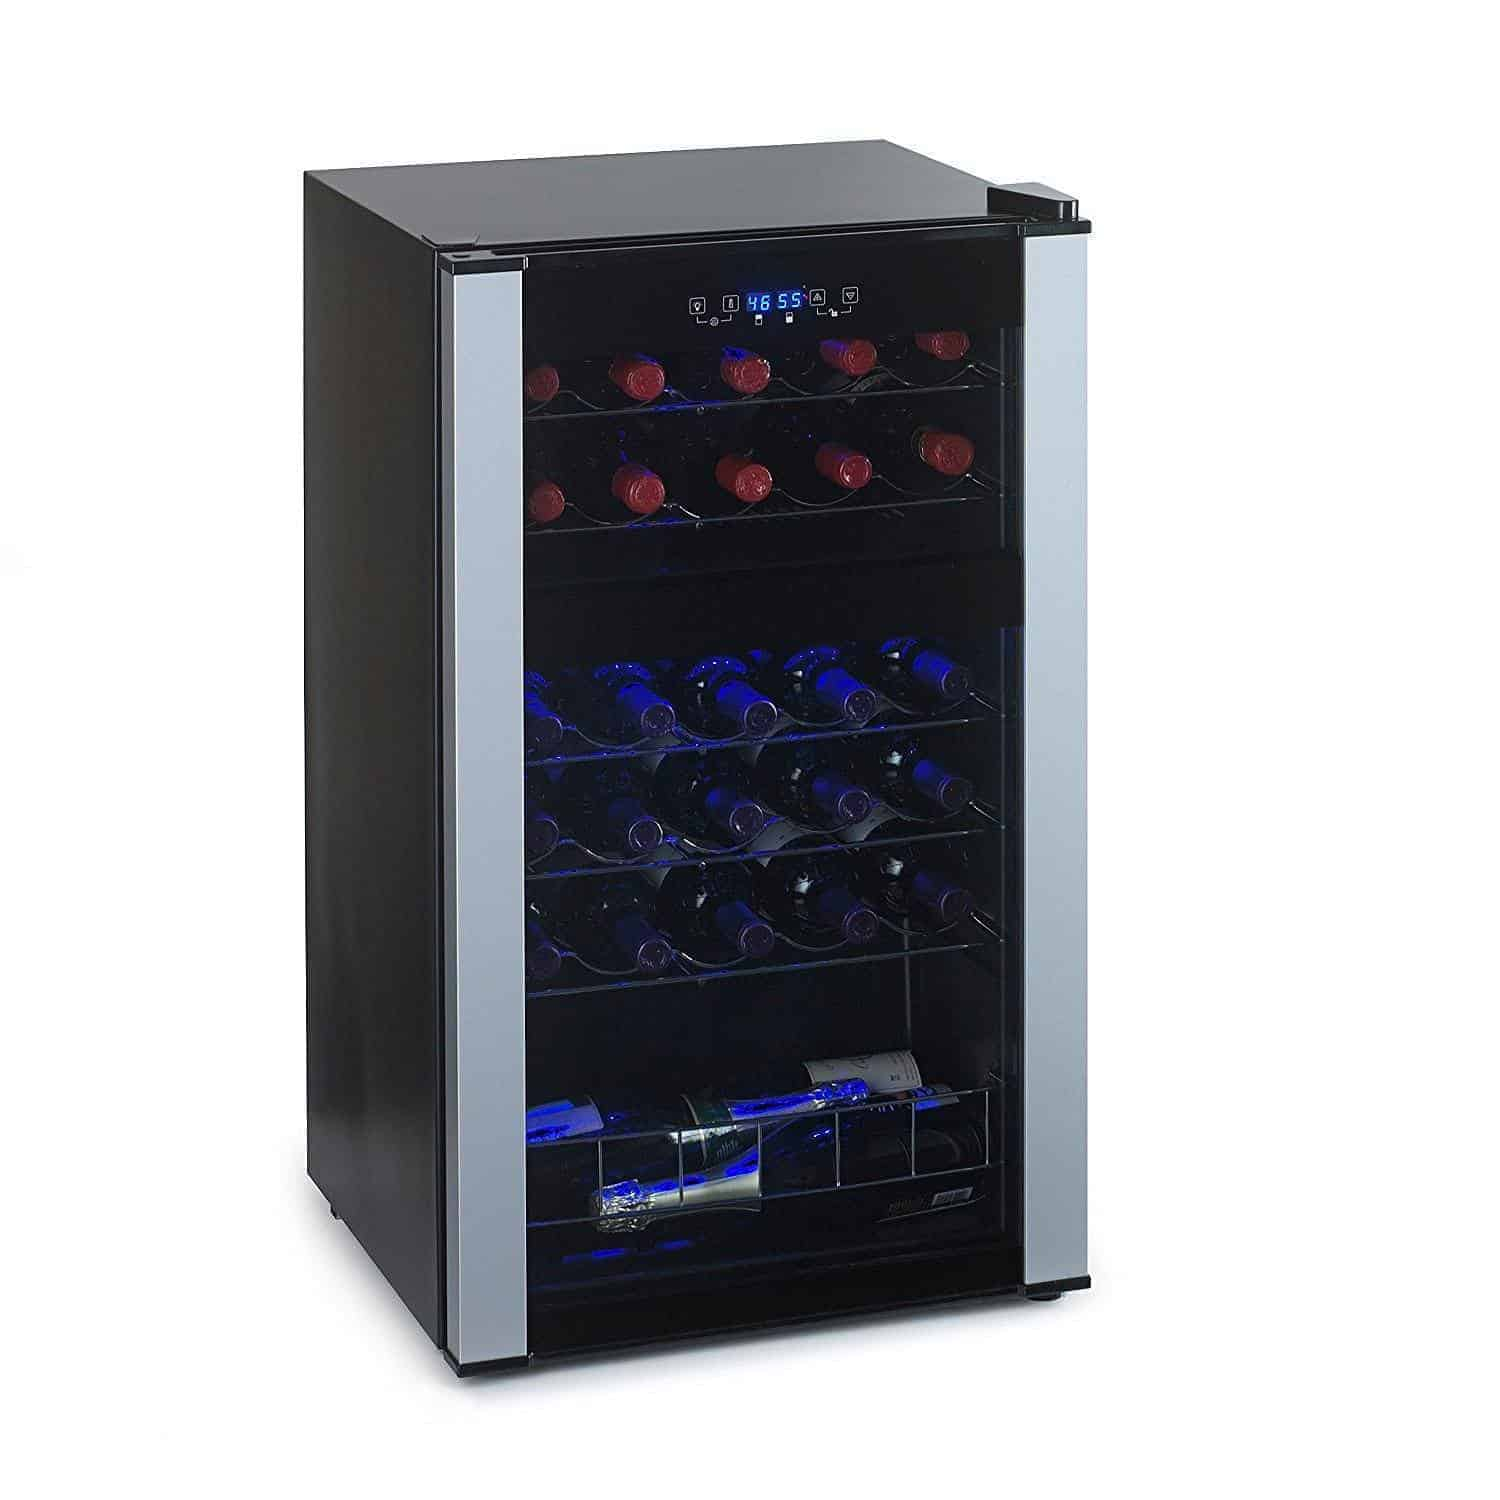 Wine Enthusiast 268 68 30 02 29-Bottle Evolution Series Dual Zone Wine Cooler